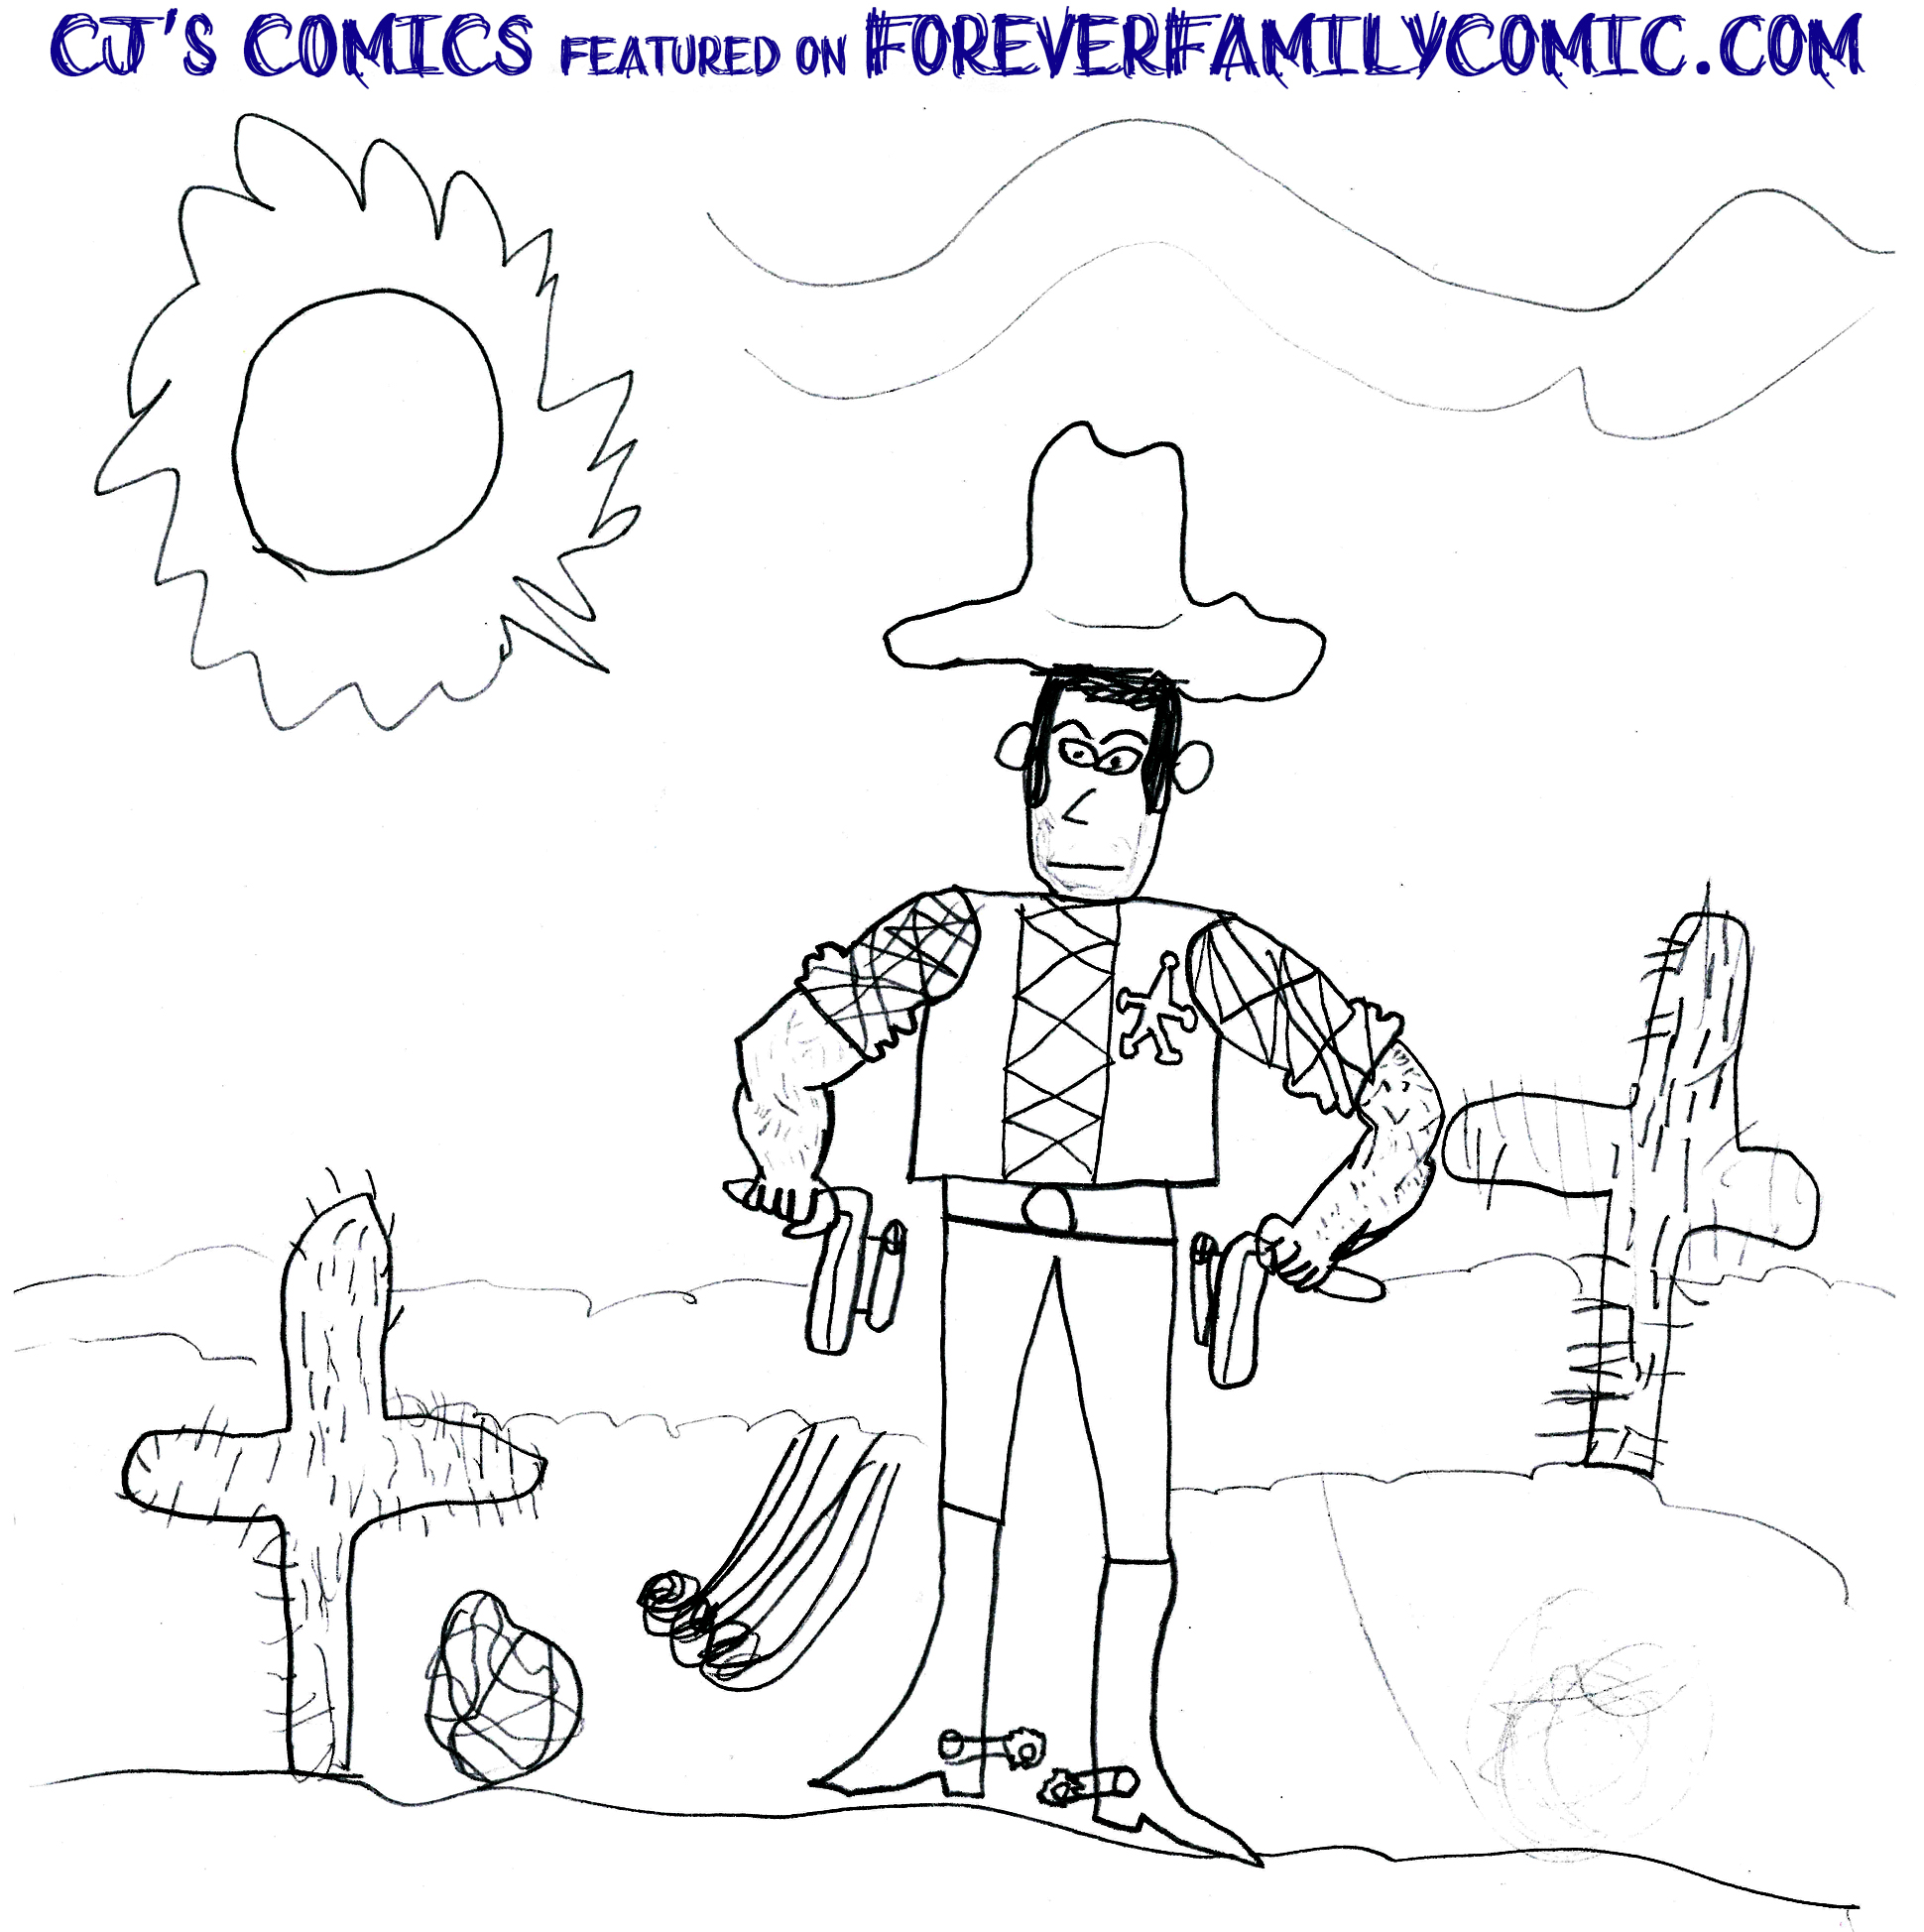 CJ's Cowboy drawing at ForeverFamilyComic.com